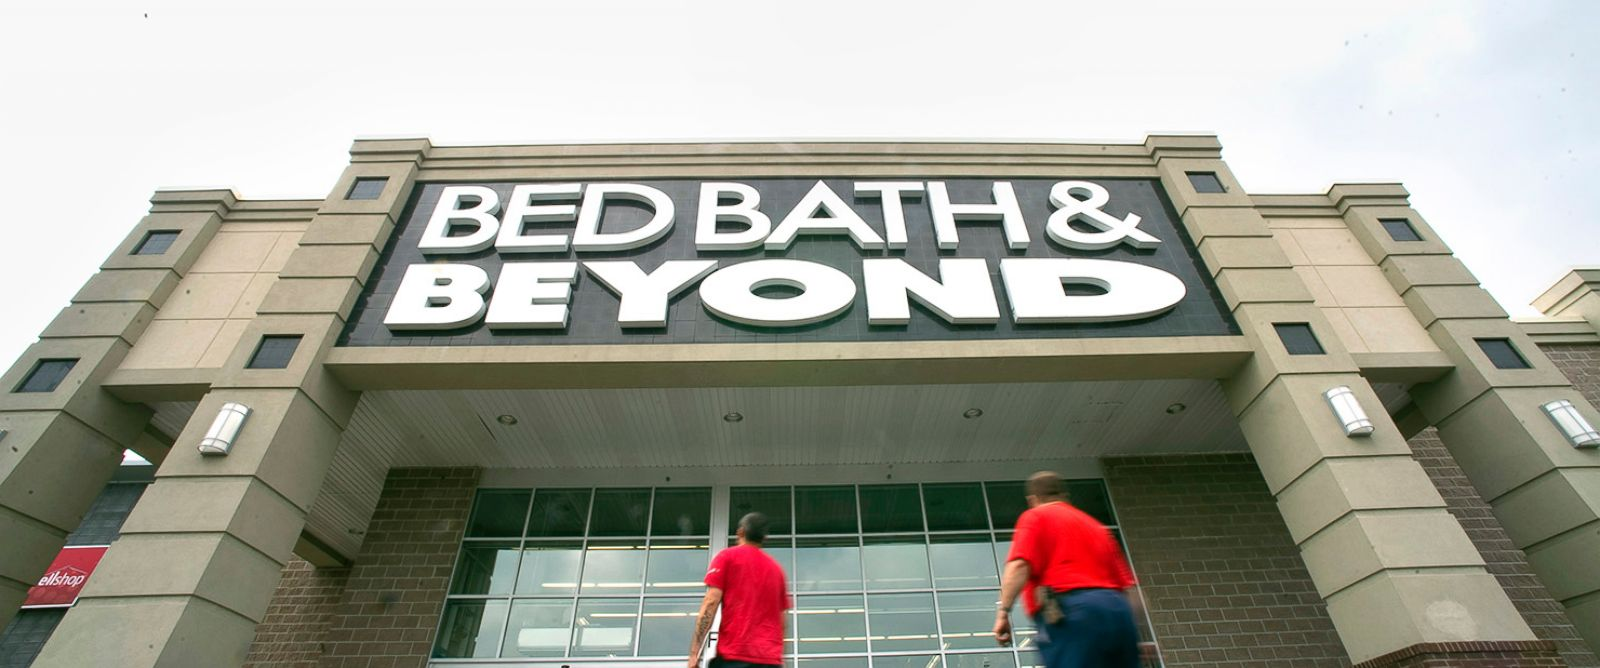 Attention!! Latest Product Recall from Bed Bath & Beyond!! Product Being Recalled – Podee Hands Free Baby Bottle System. Reason for Recall Products that position infant feeding bottles and enable infants to feed themselves without supervision are prohibited by law in Canada.